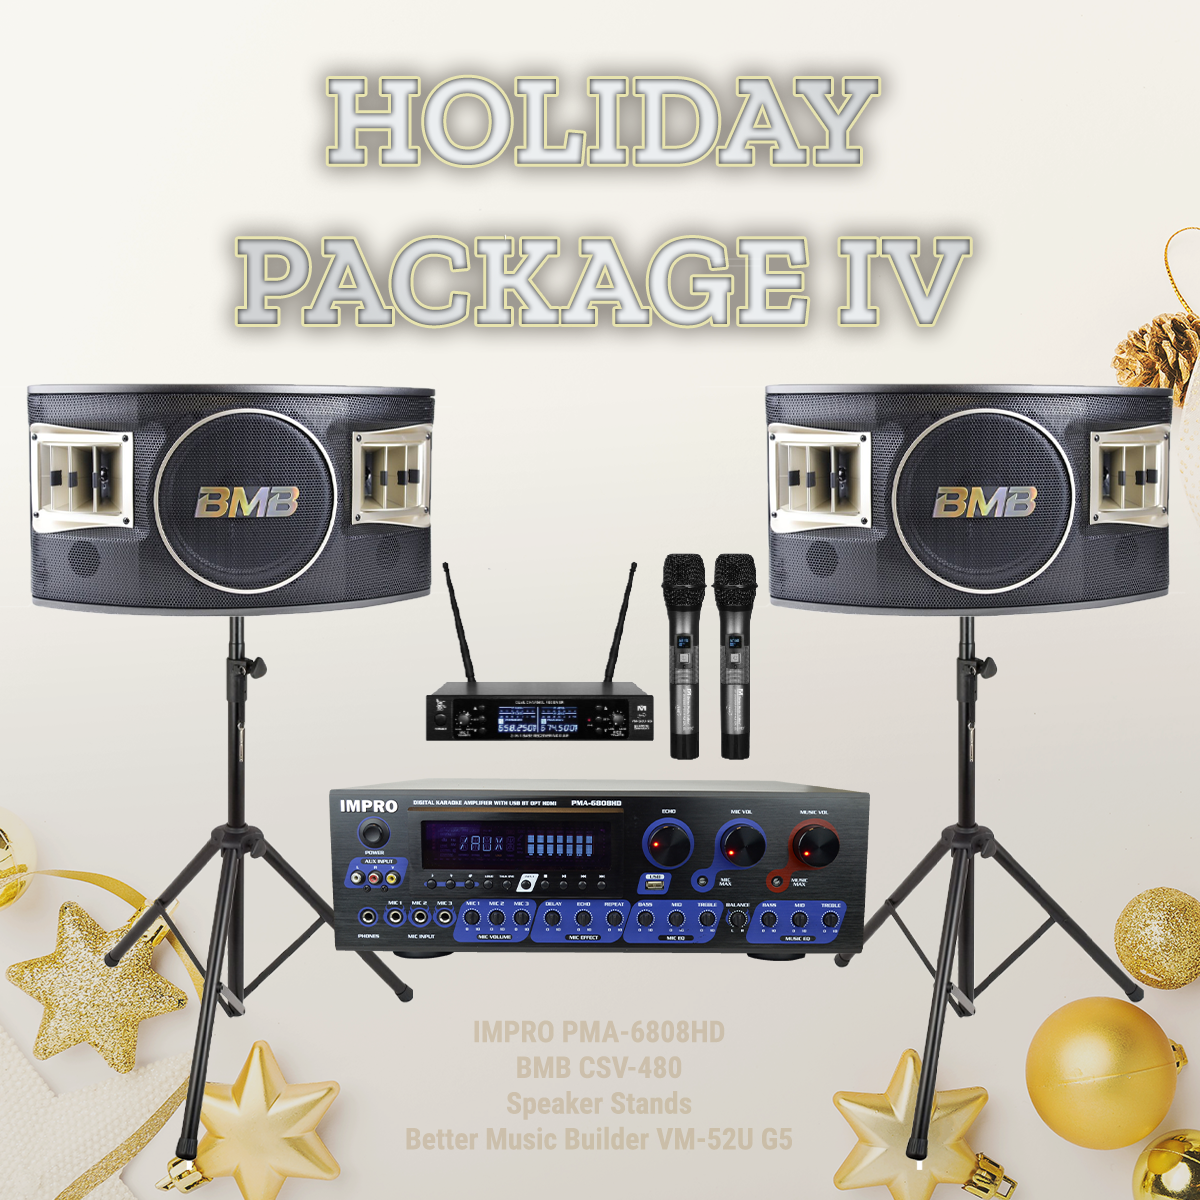 Holiday Package #04: ImPro PMA-6808HD + Stands + BMB Speakers (Pair) + BetterMusicBuilder Microphone System